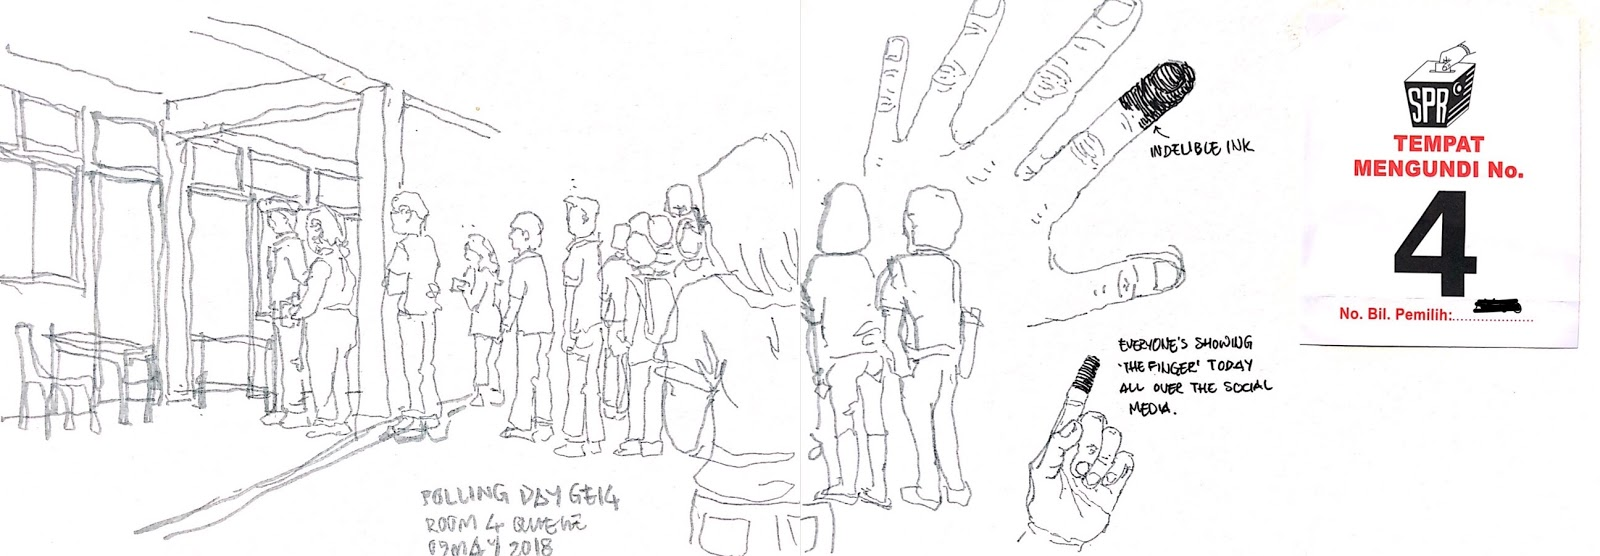 Voted for a Better Malaysia | Urban Sketchers